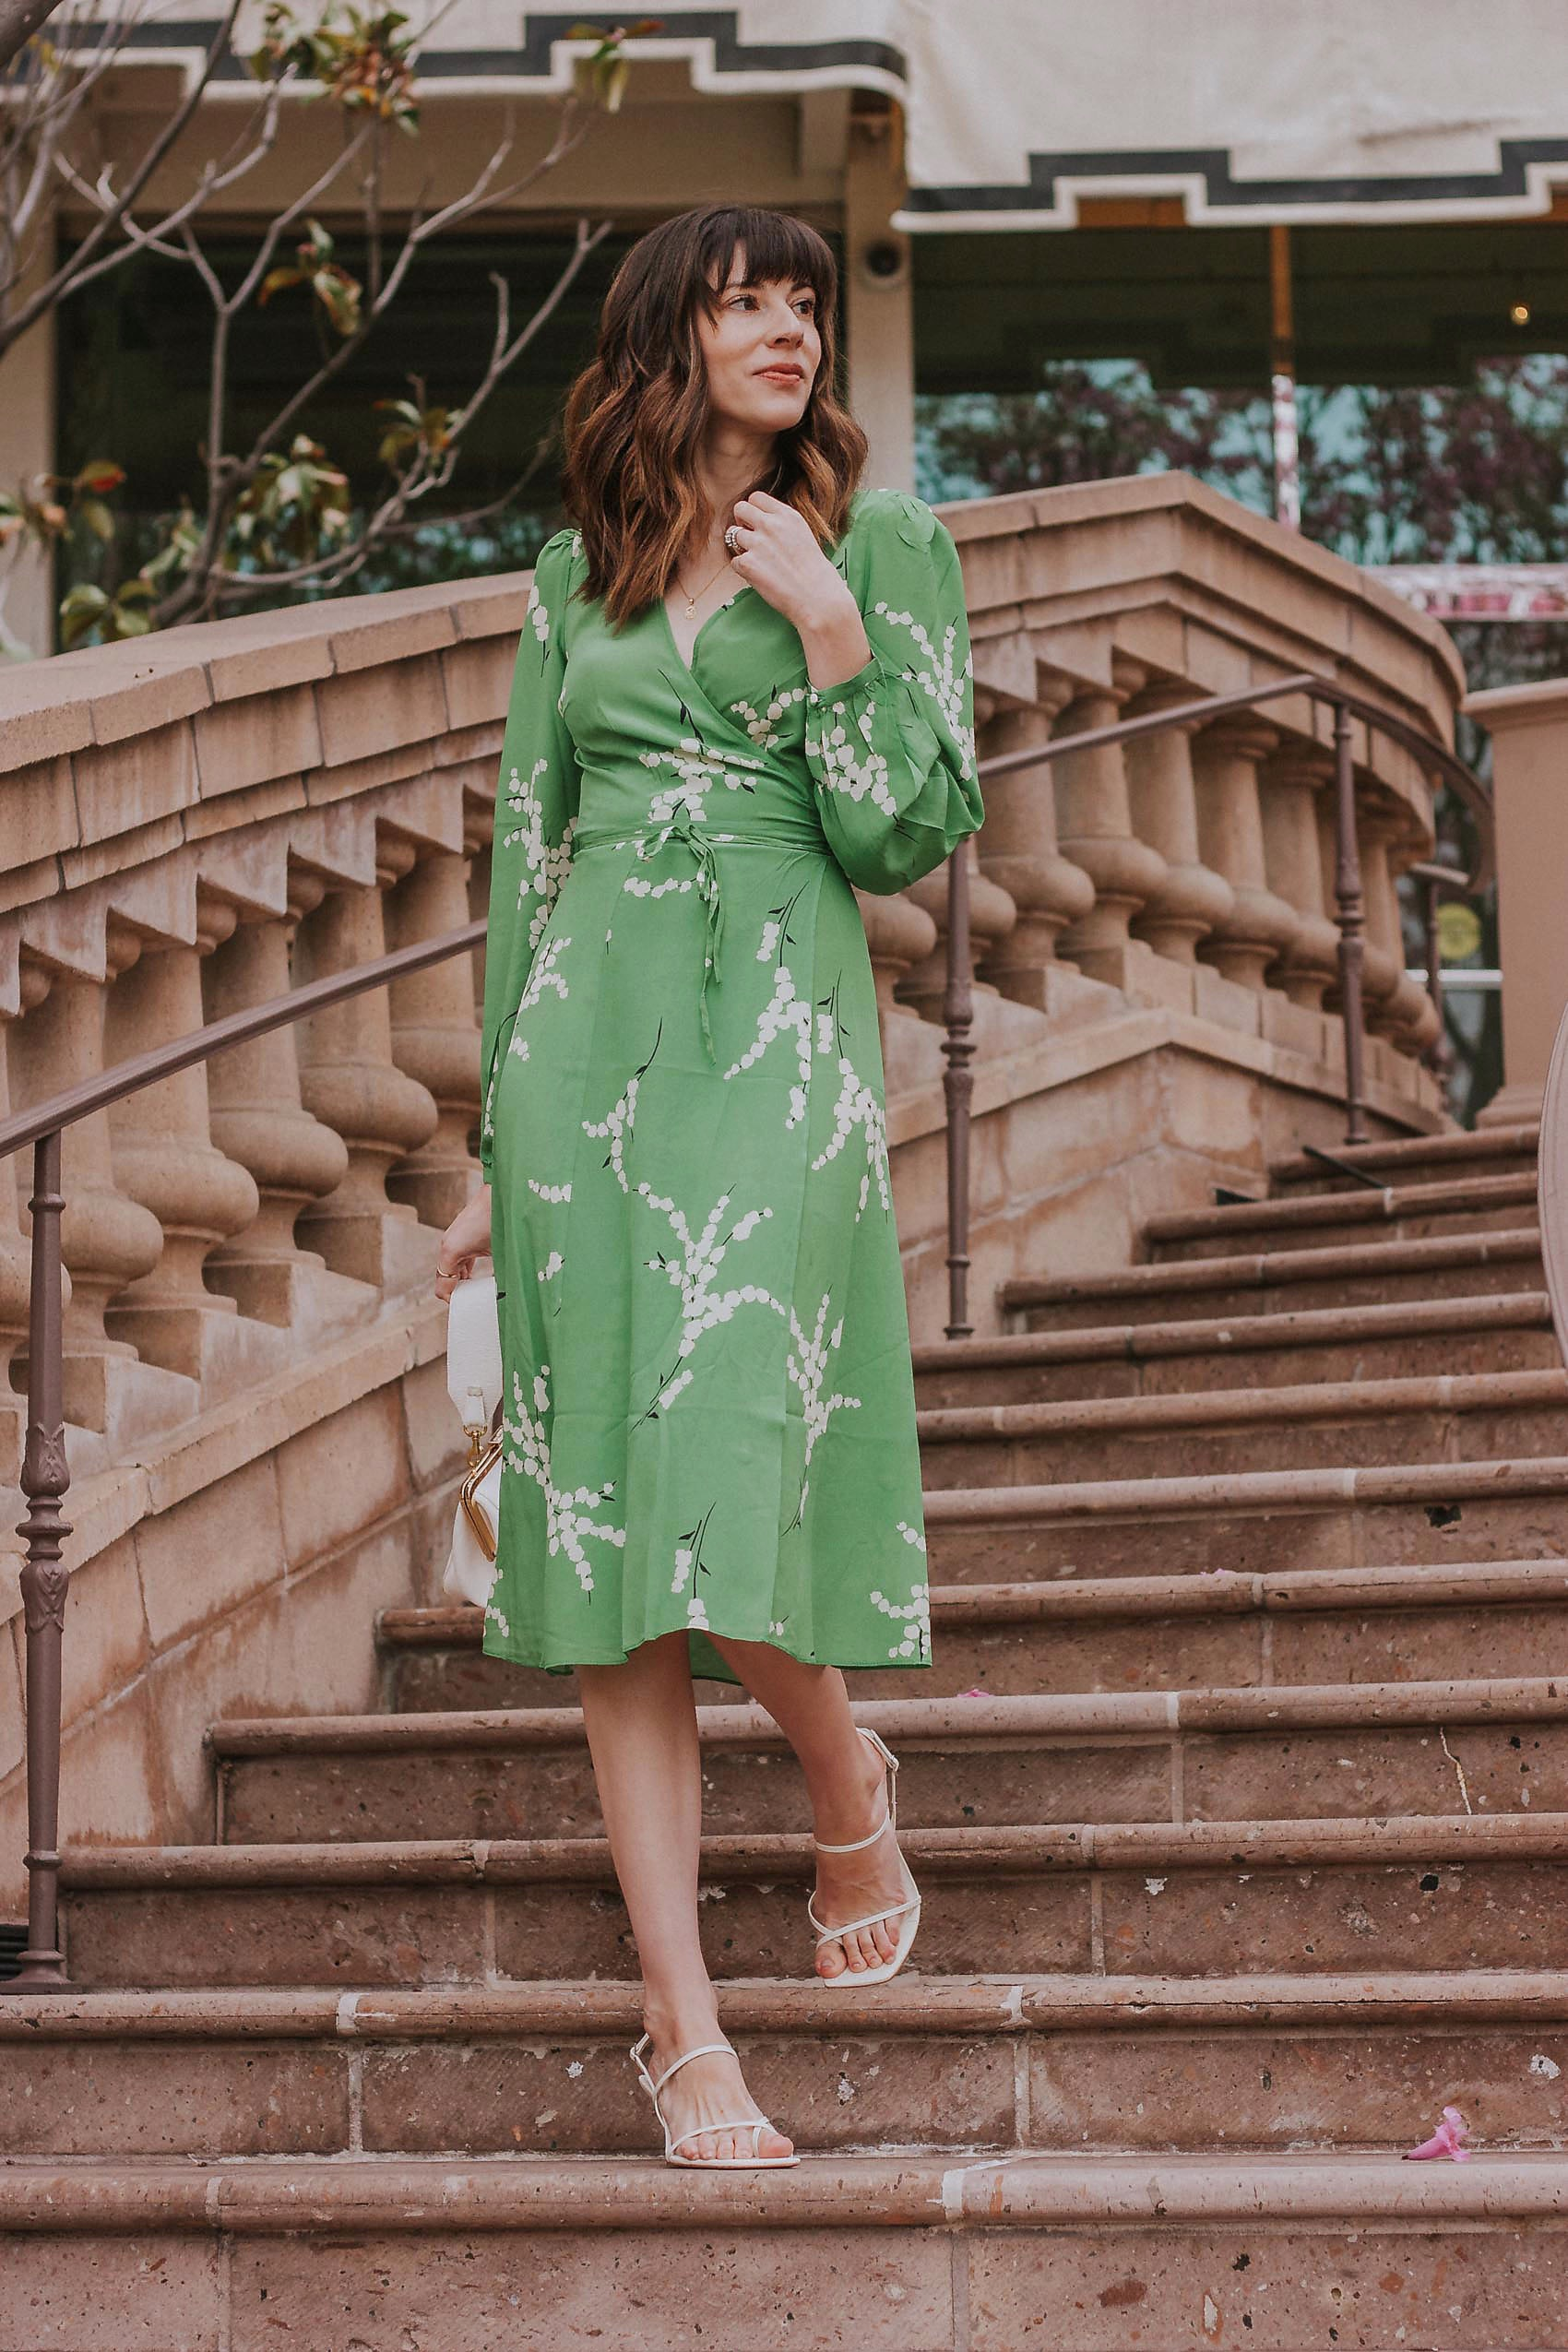 Los Angeles Blogger wearing French Inspired Midi Dress from Realisation Par